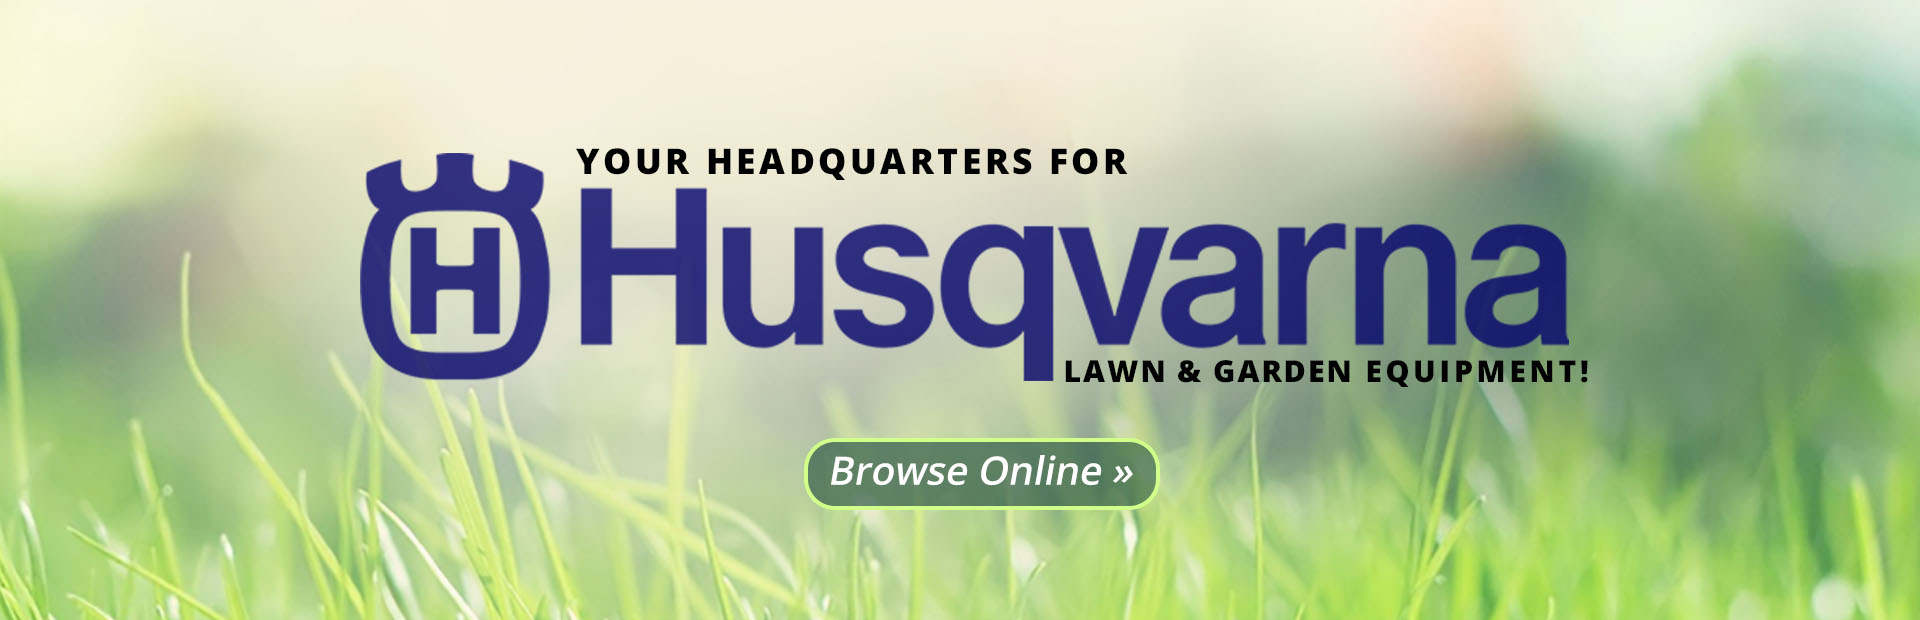 Husqvarna Lawn & Garden Equipment: Click here to view the models.